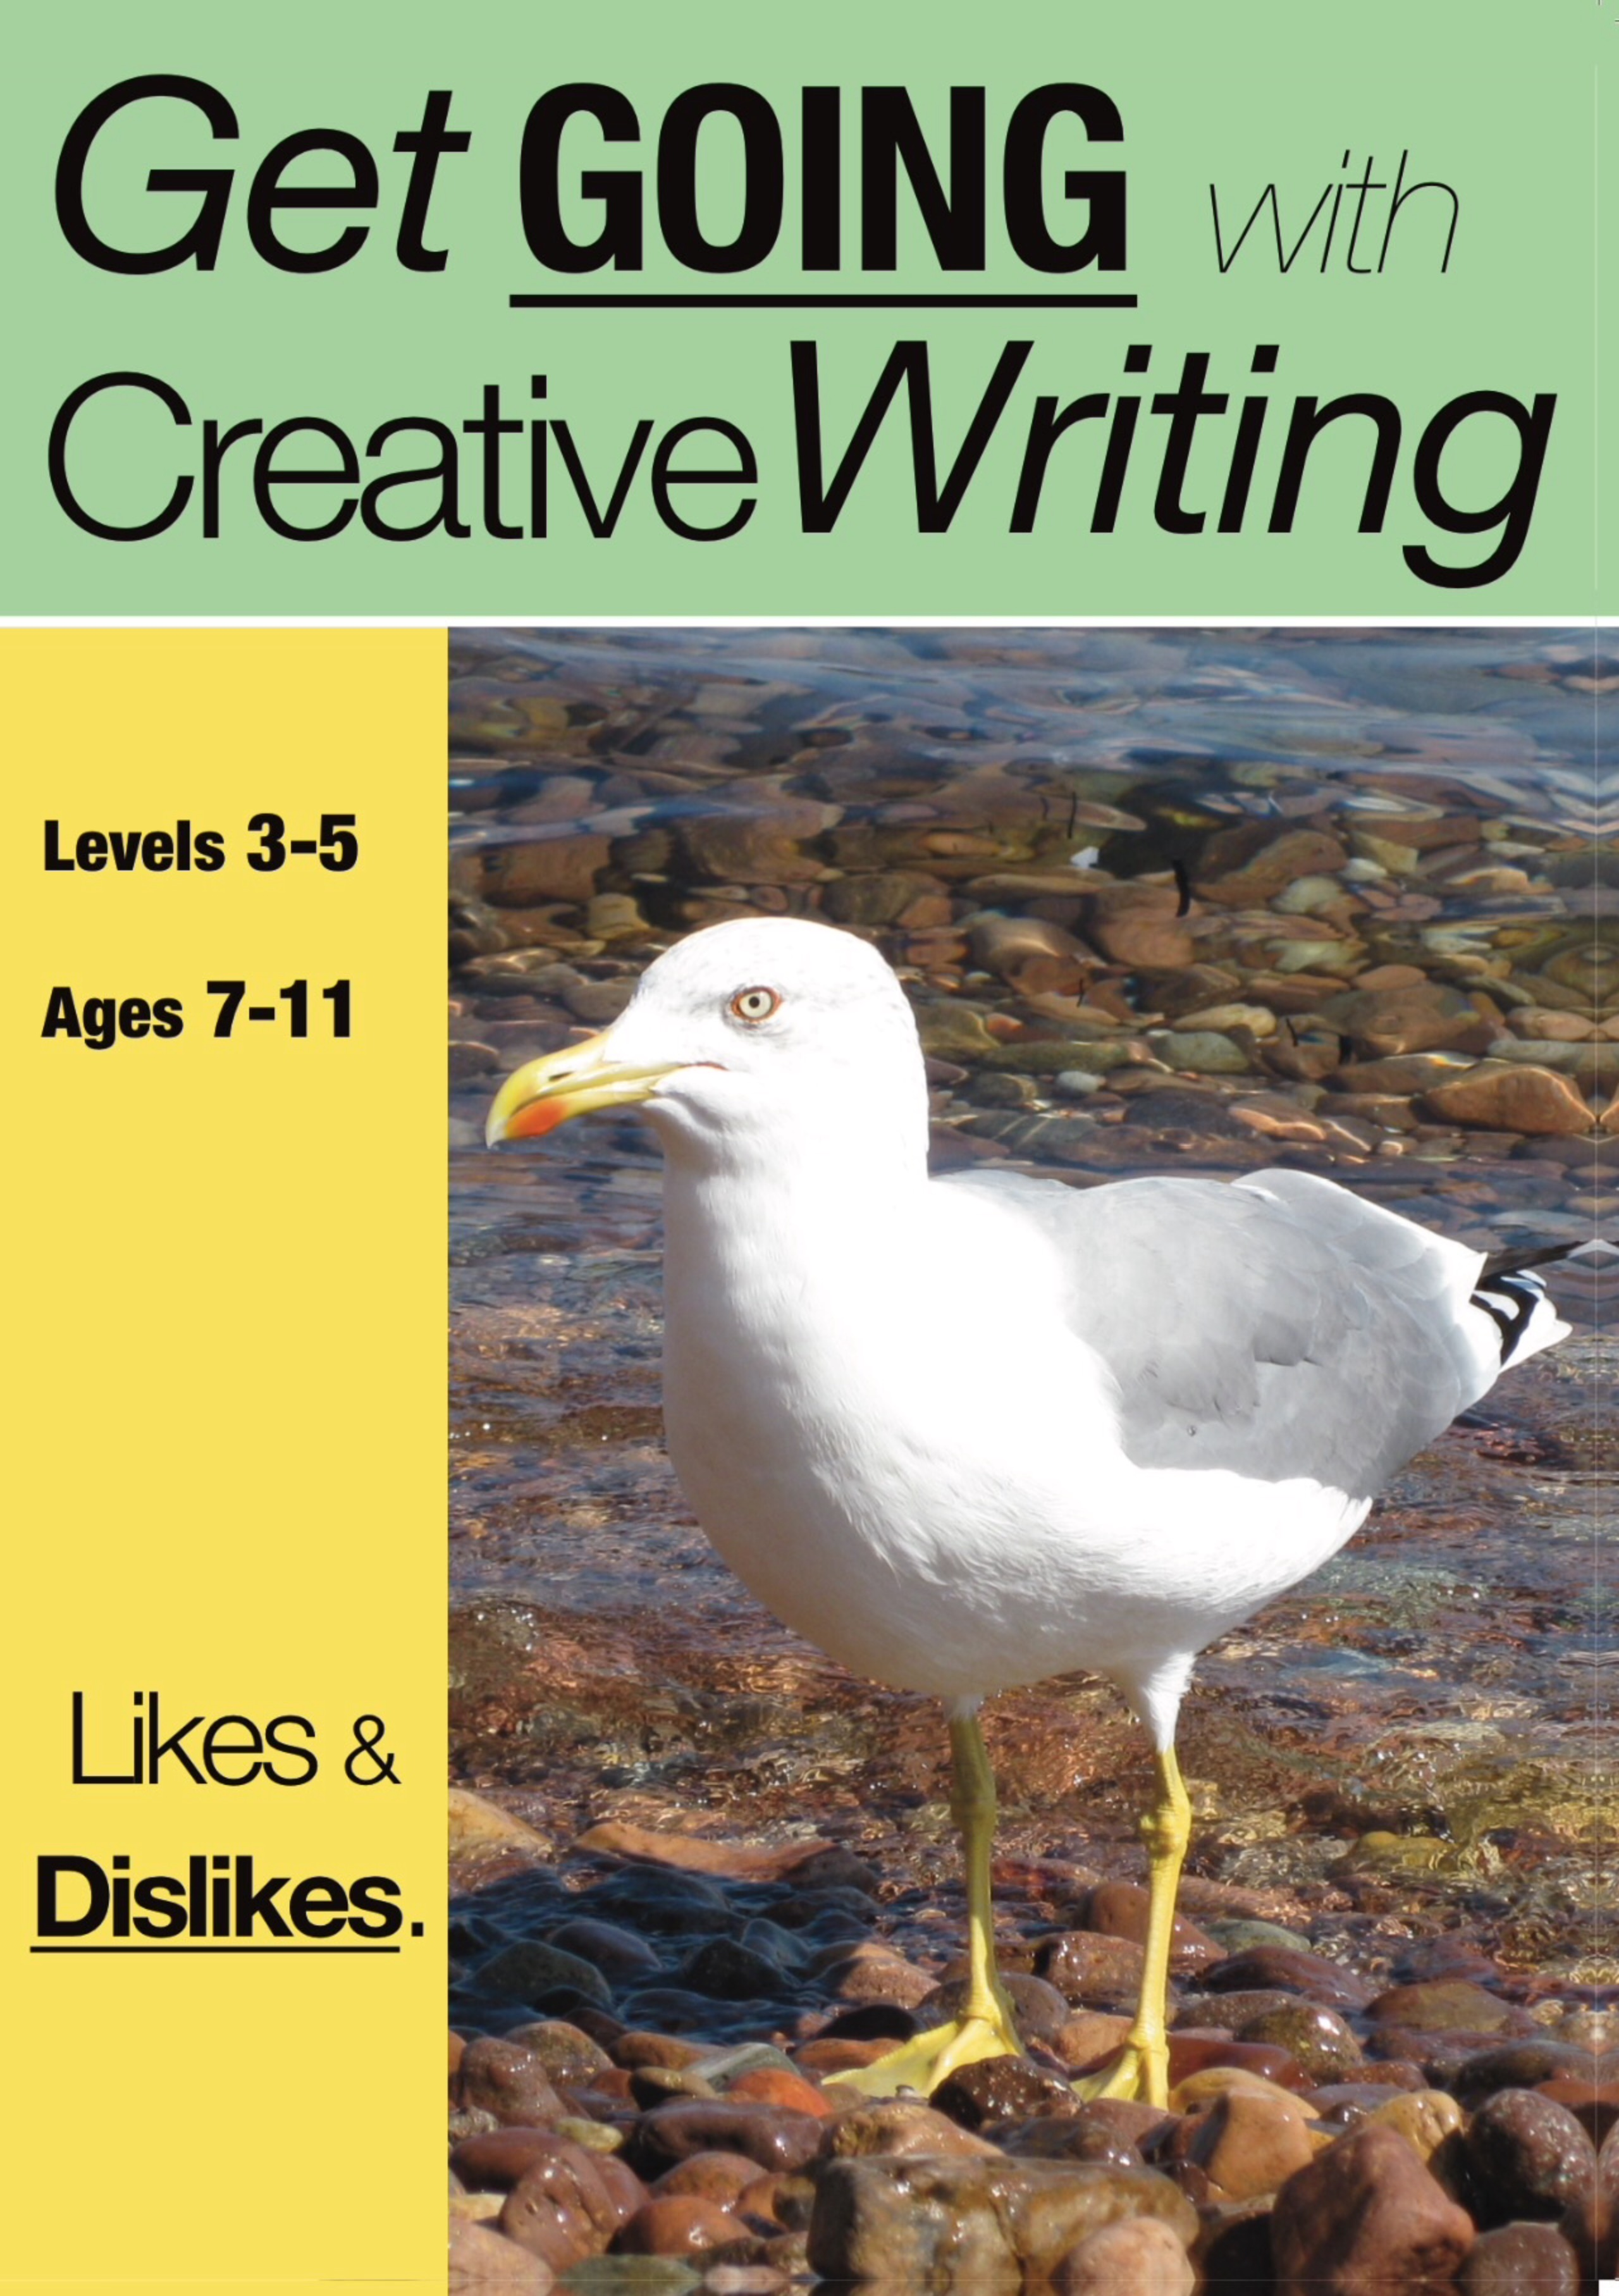 Likes & Dislikes: Get Going With Creative Writing (and other forms of writing) Digital Download